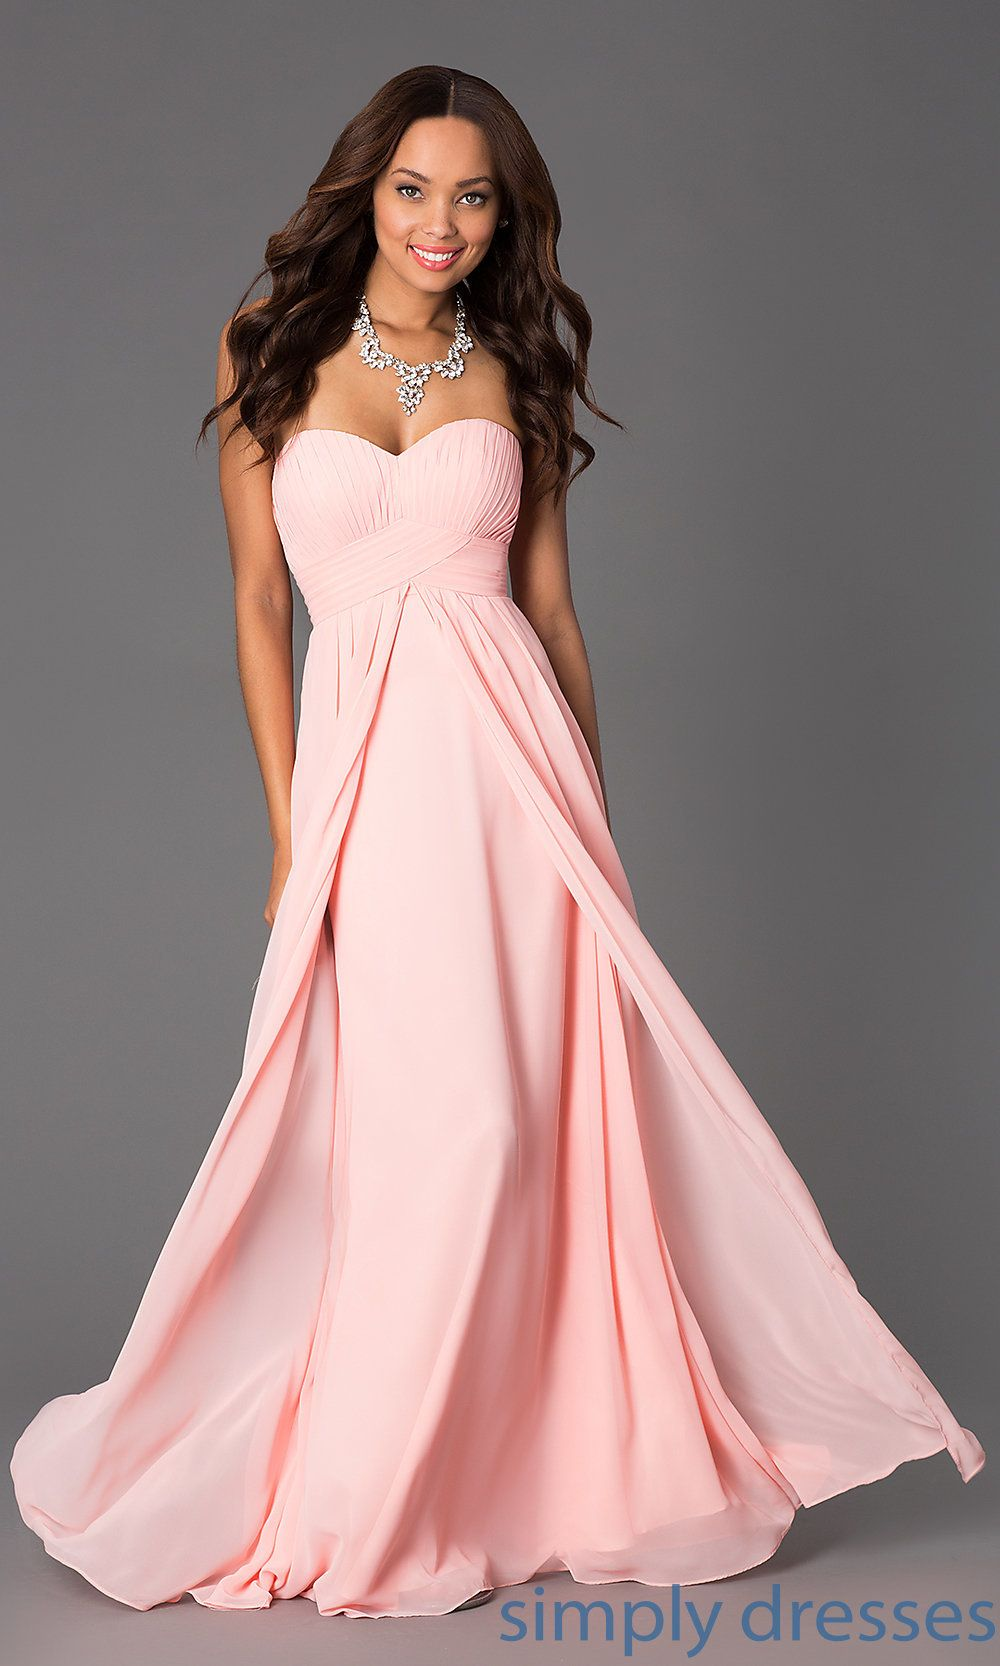 Pleated Pastel Strapless Sweetheart Gown | wedding | Pinterest ...